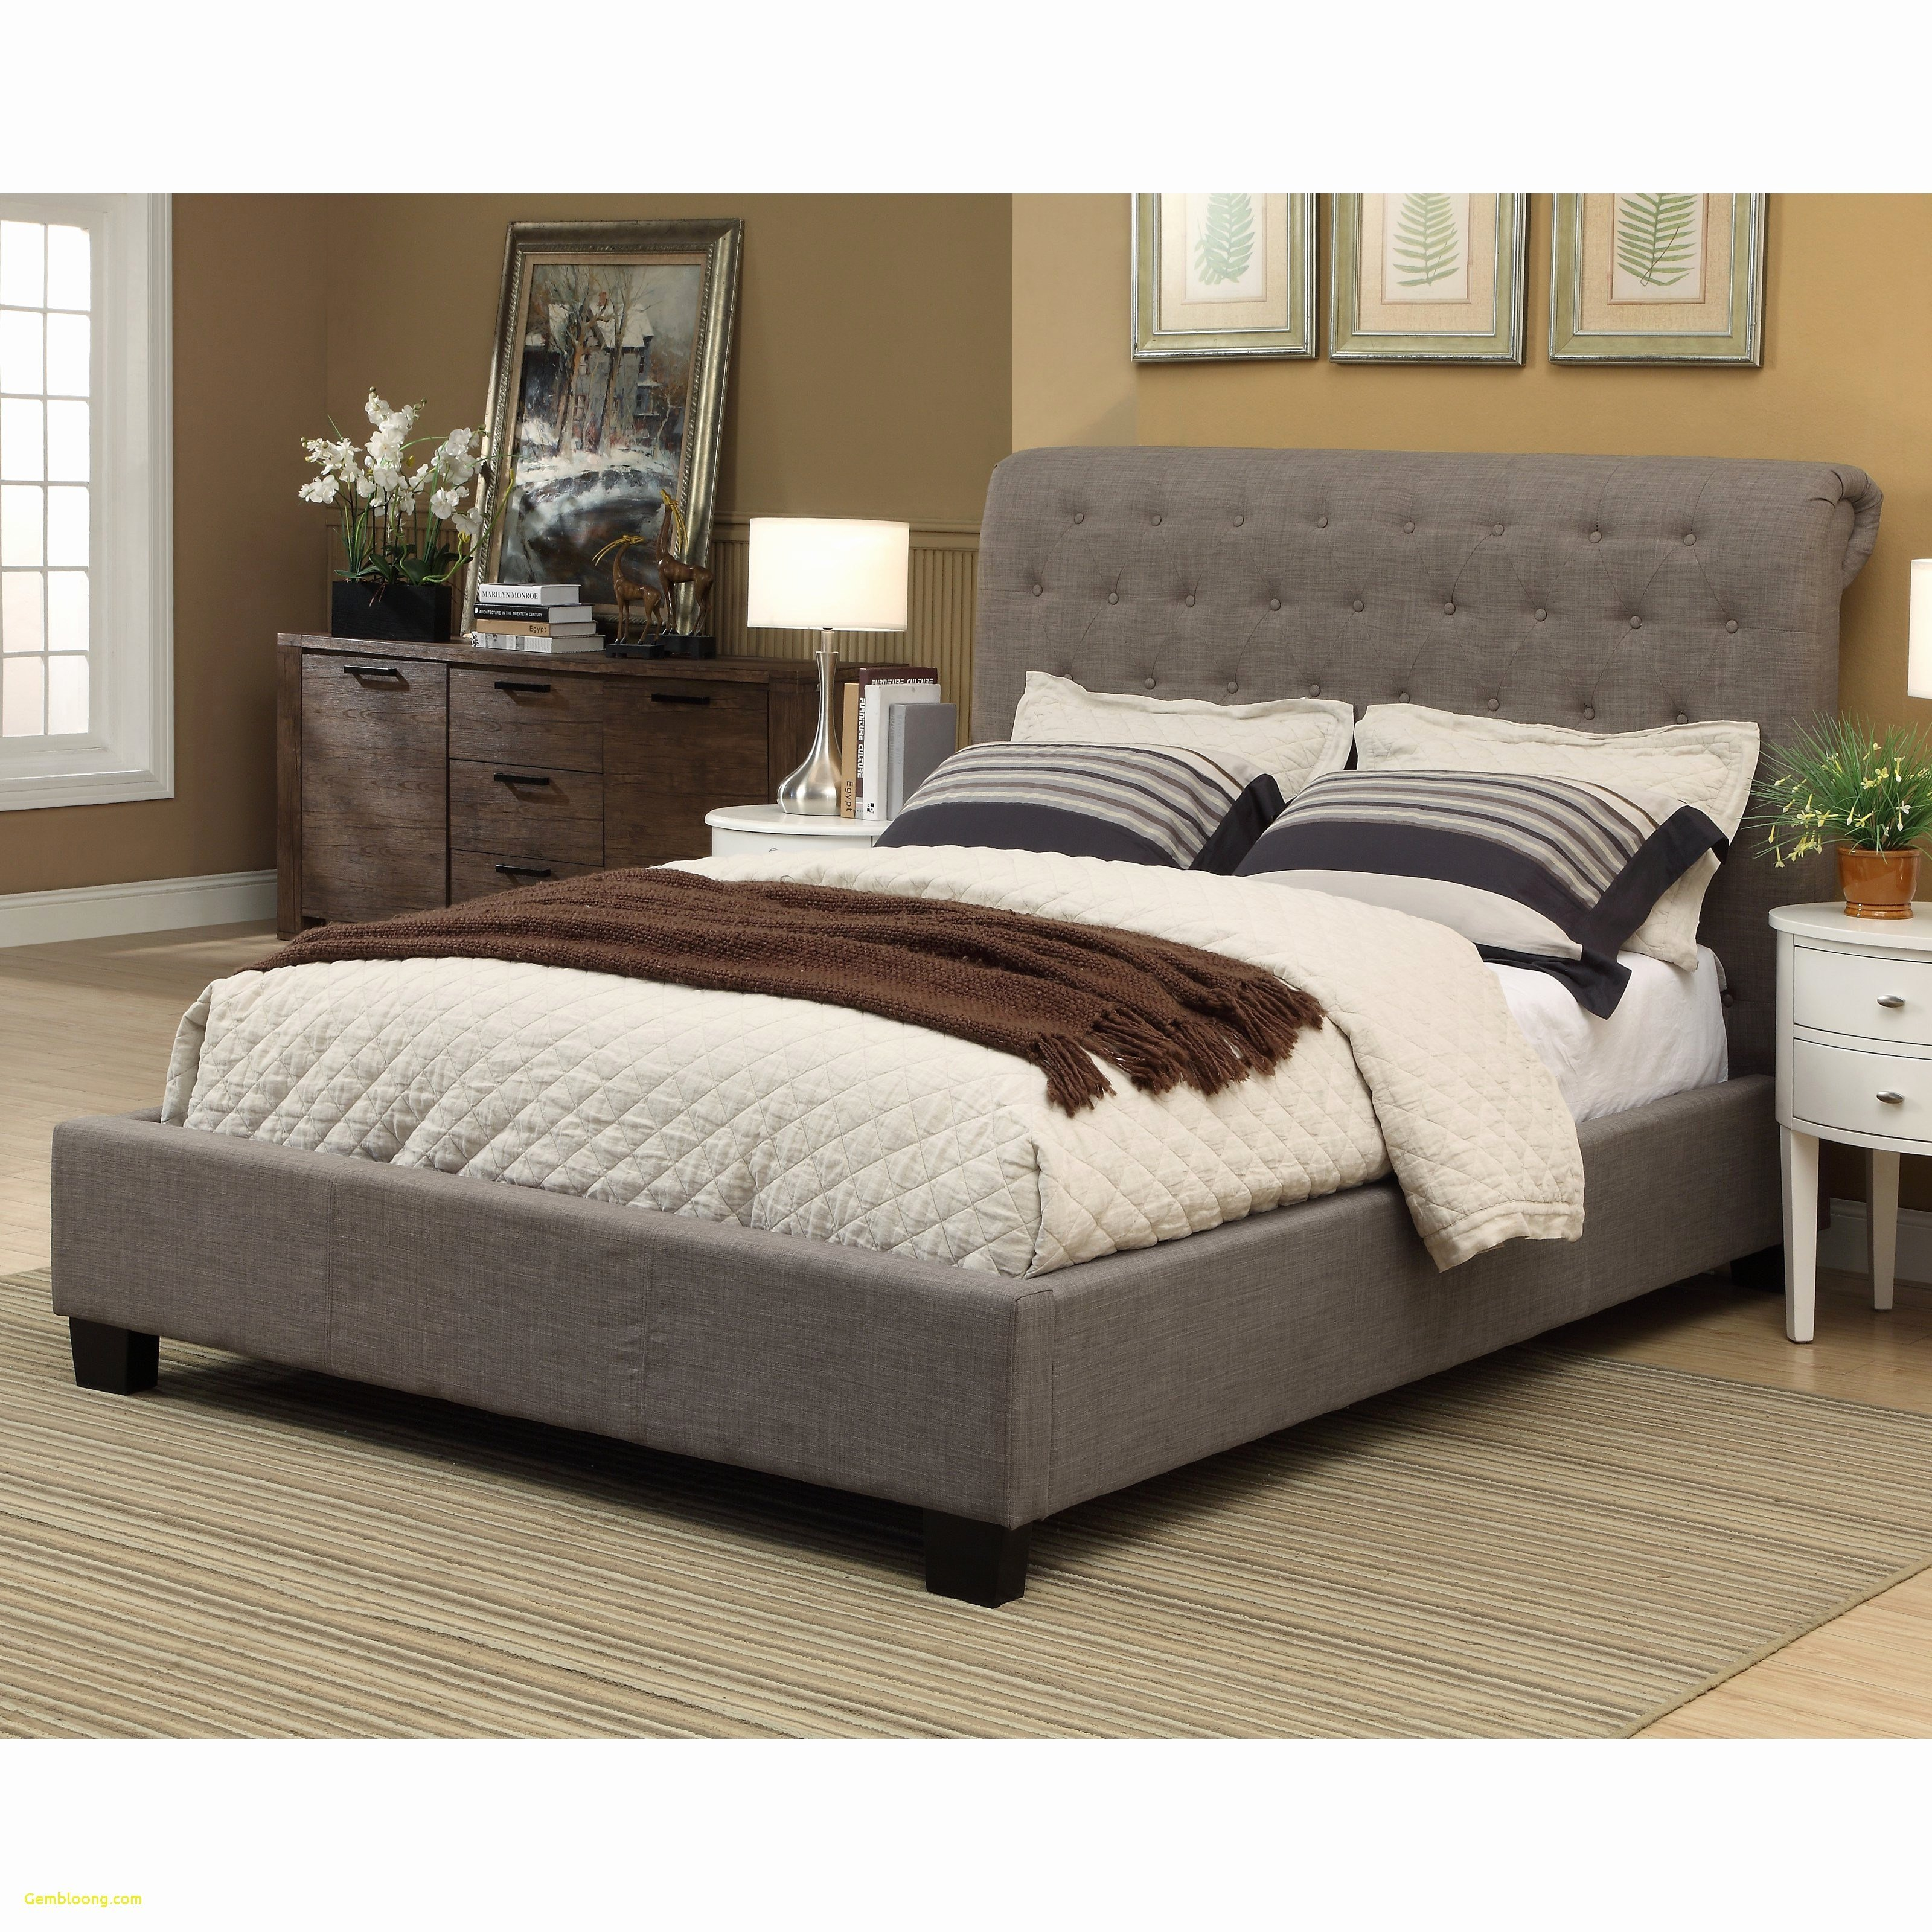 Best Furniture Awesome Costco Bedroom Furniture For Your With Pictures